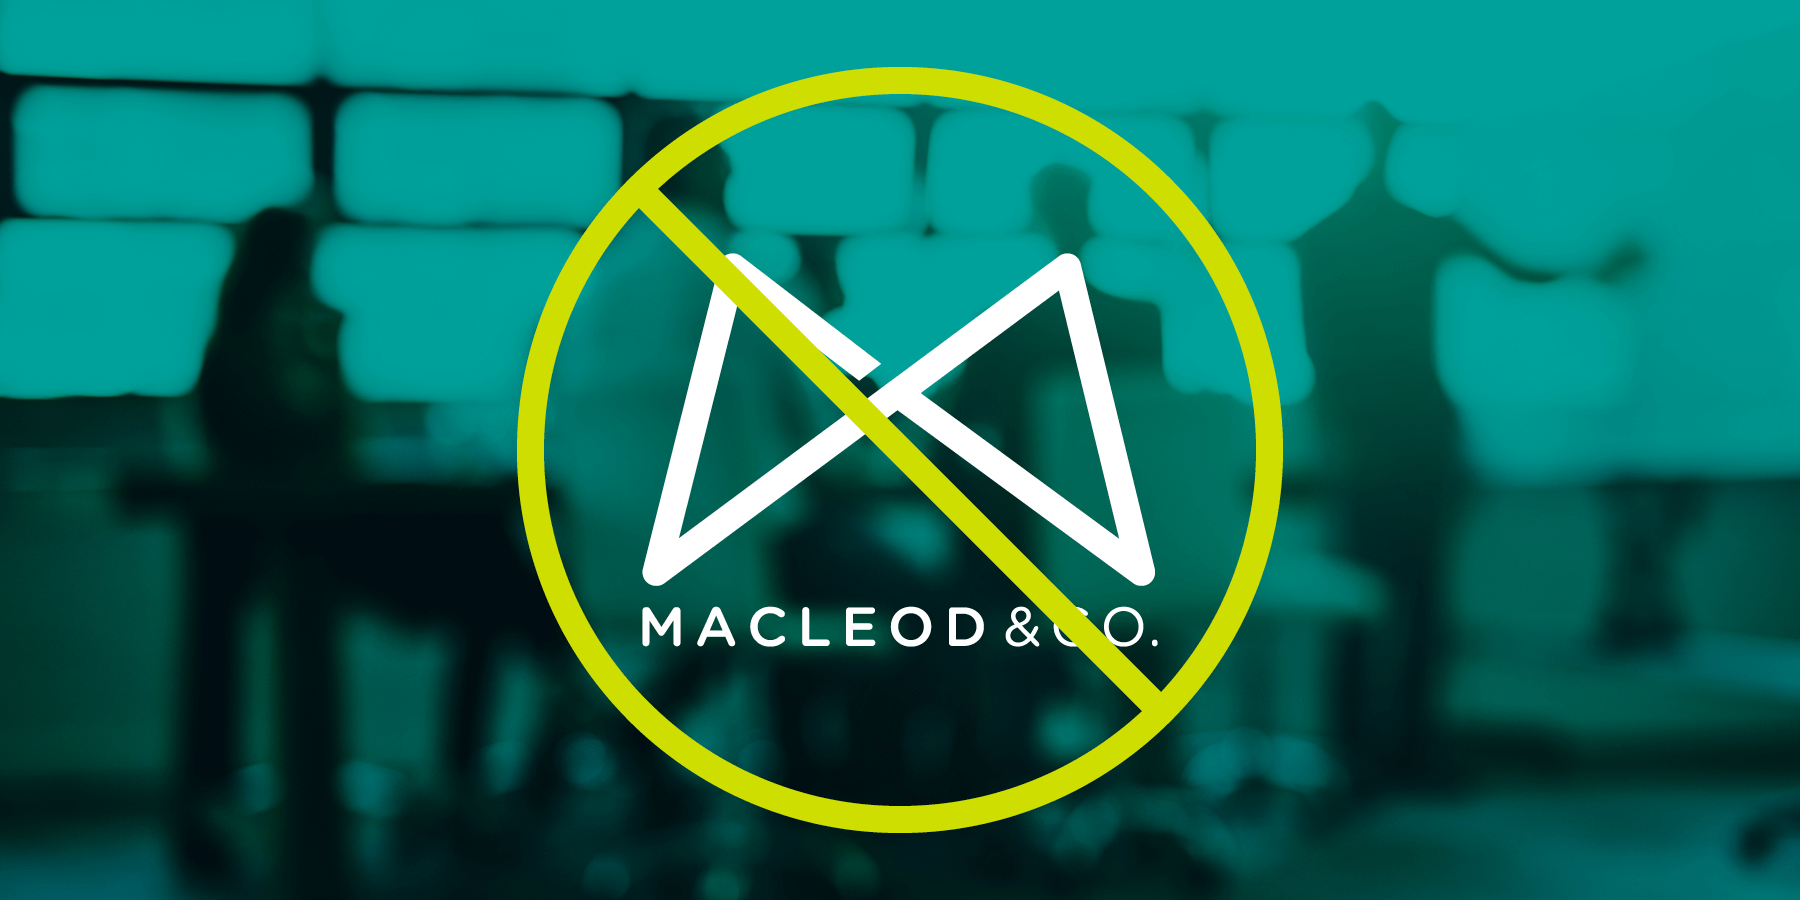 Work With Macleod & Co.